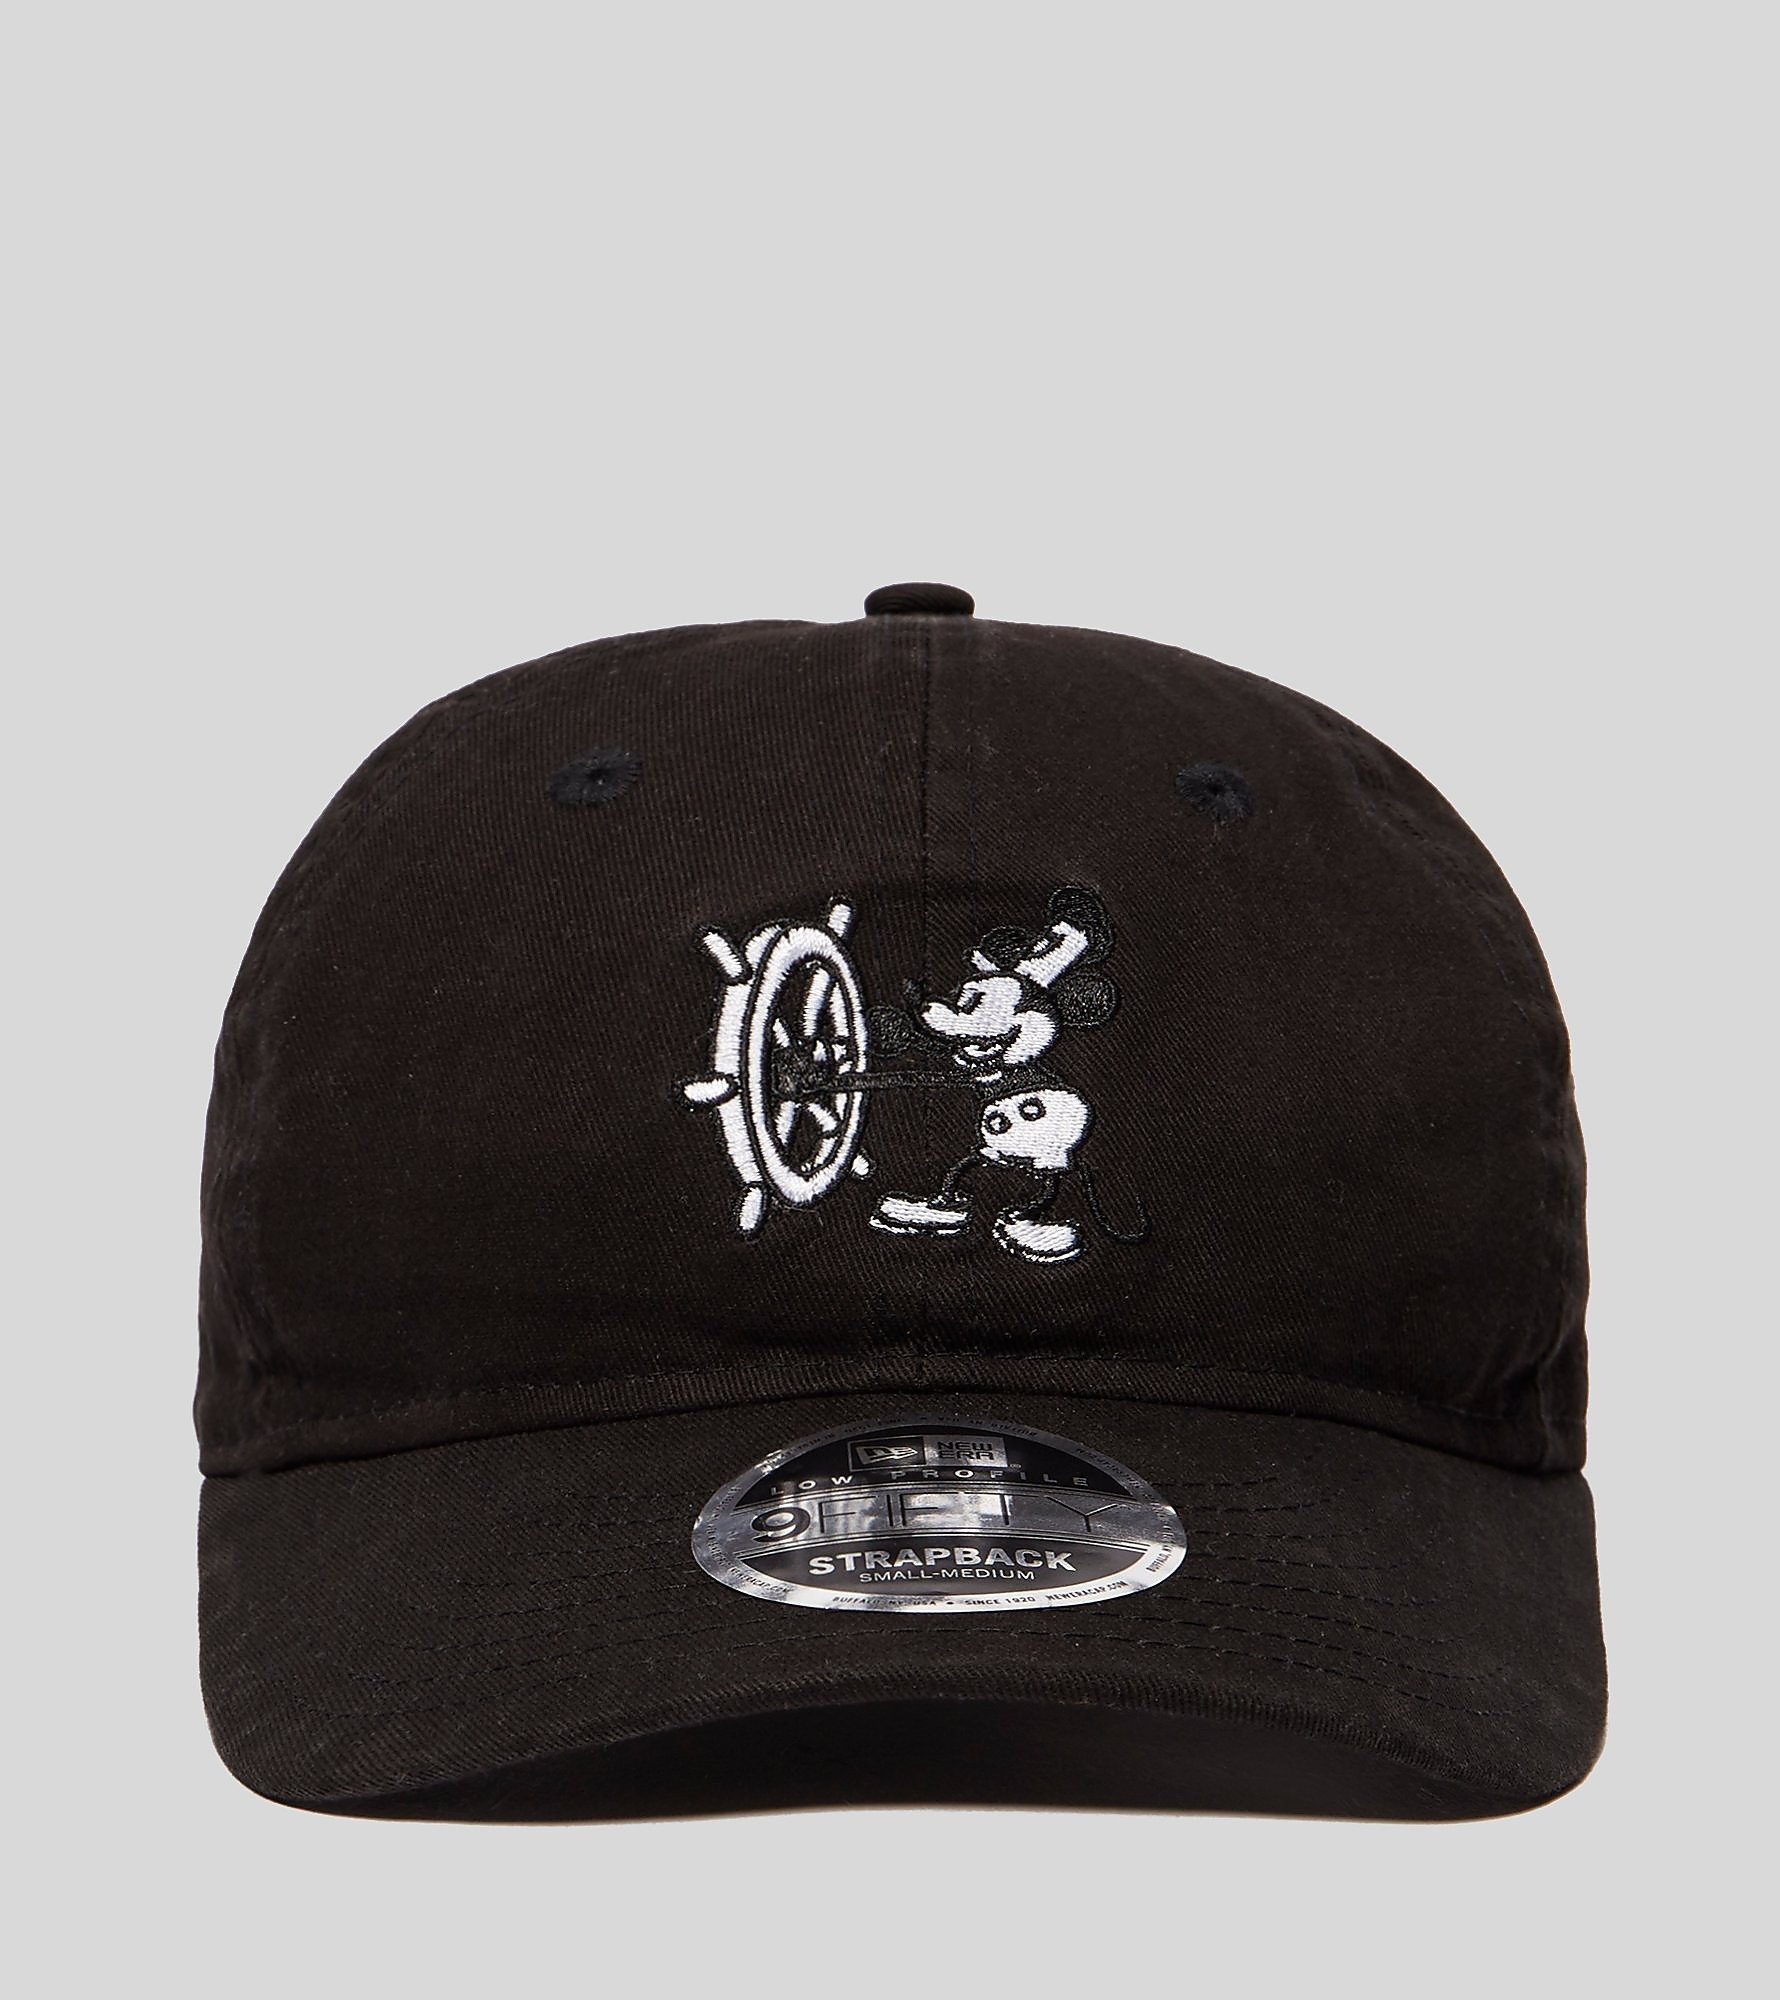 New Era 9FIFTY Mickey Cap